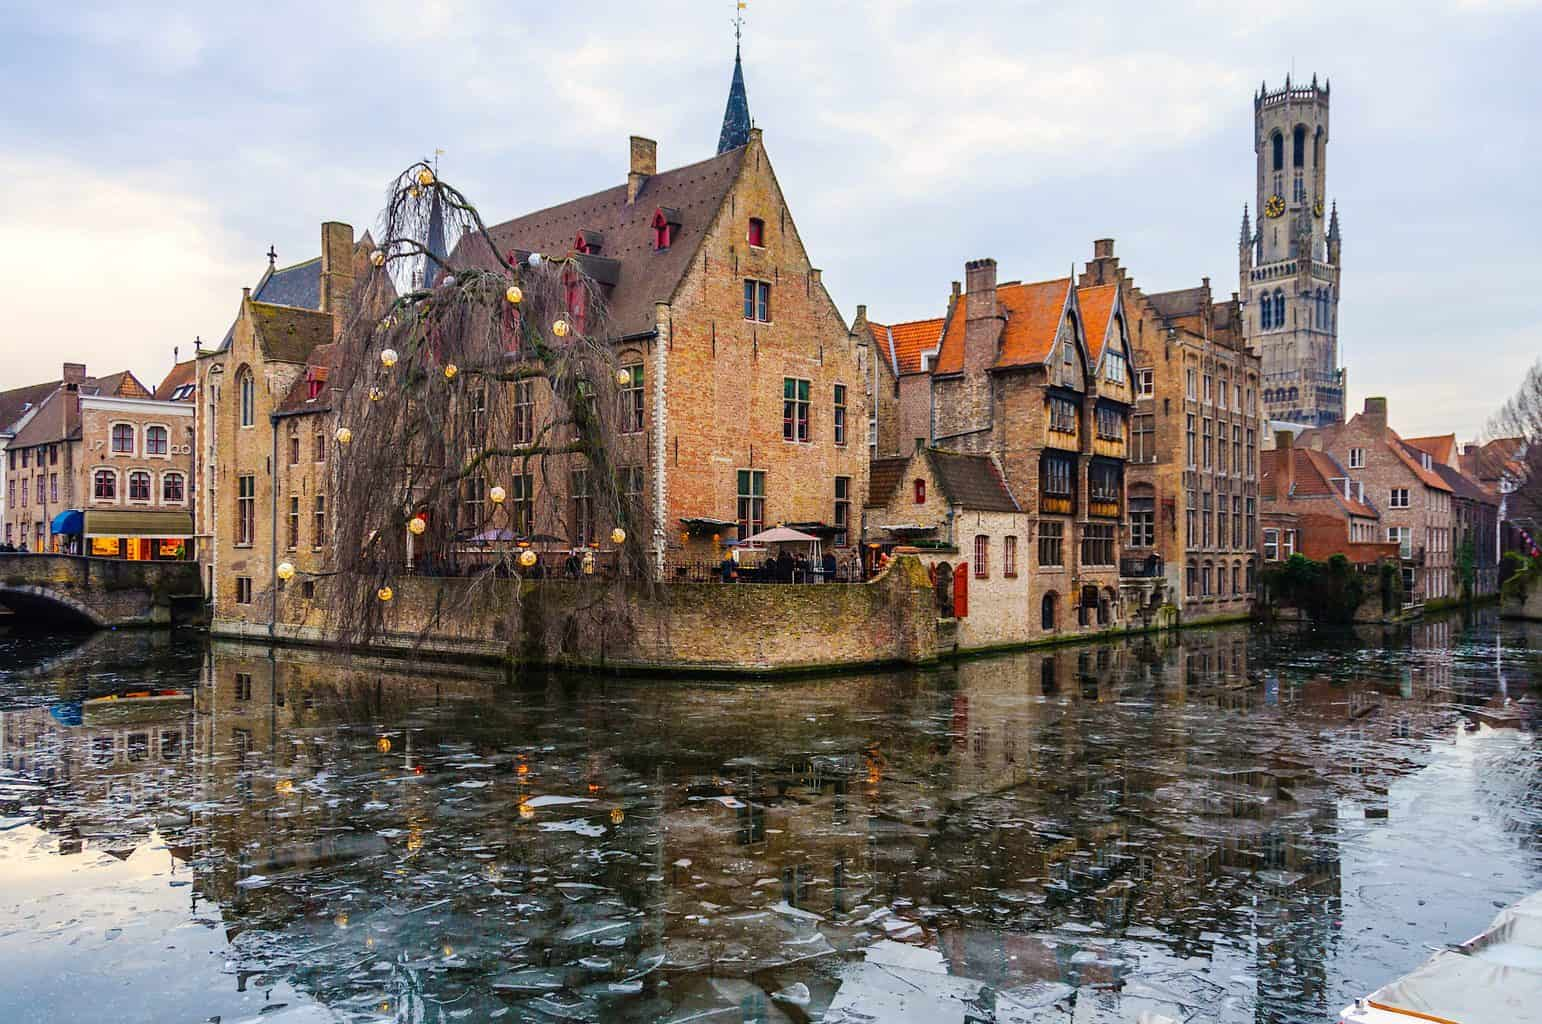 The ethereal, picture-perfect, Christmas charm you'll find in Bruges, Belgium this holiday season.